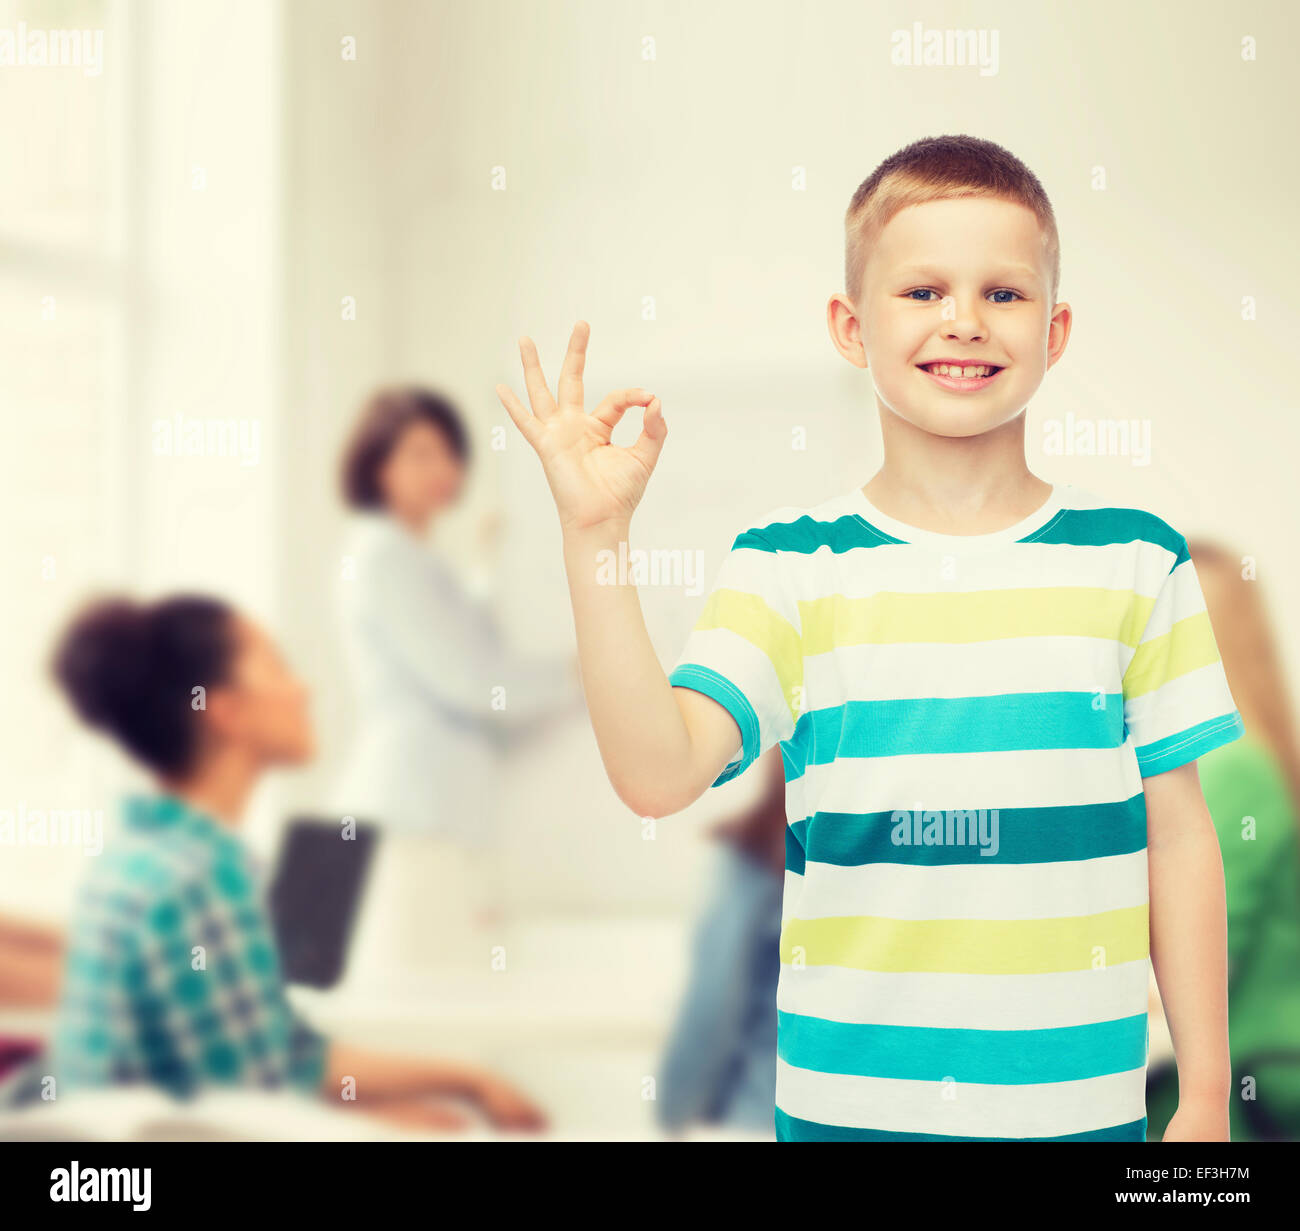 eb34c74d6a little boy in casual clothes making ok gesture Stock Photo: 78140712 ...